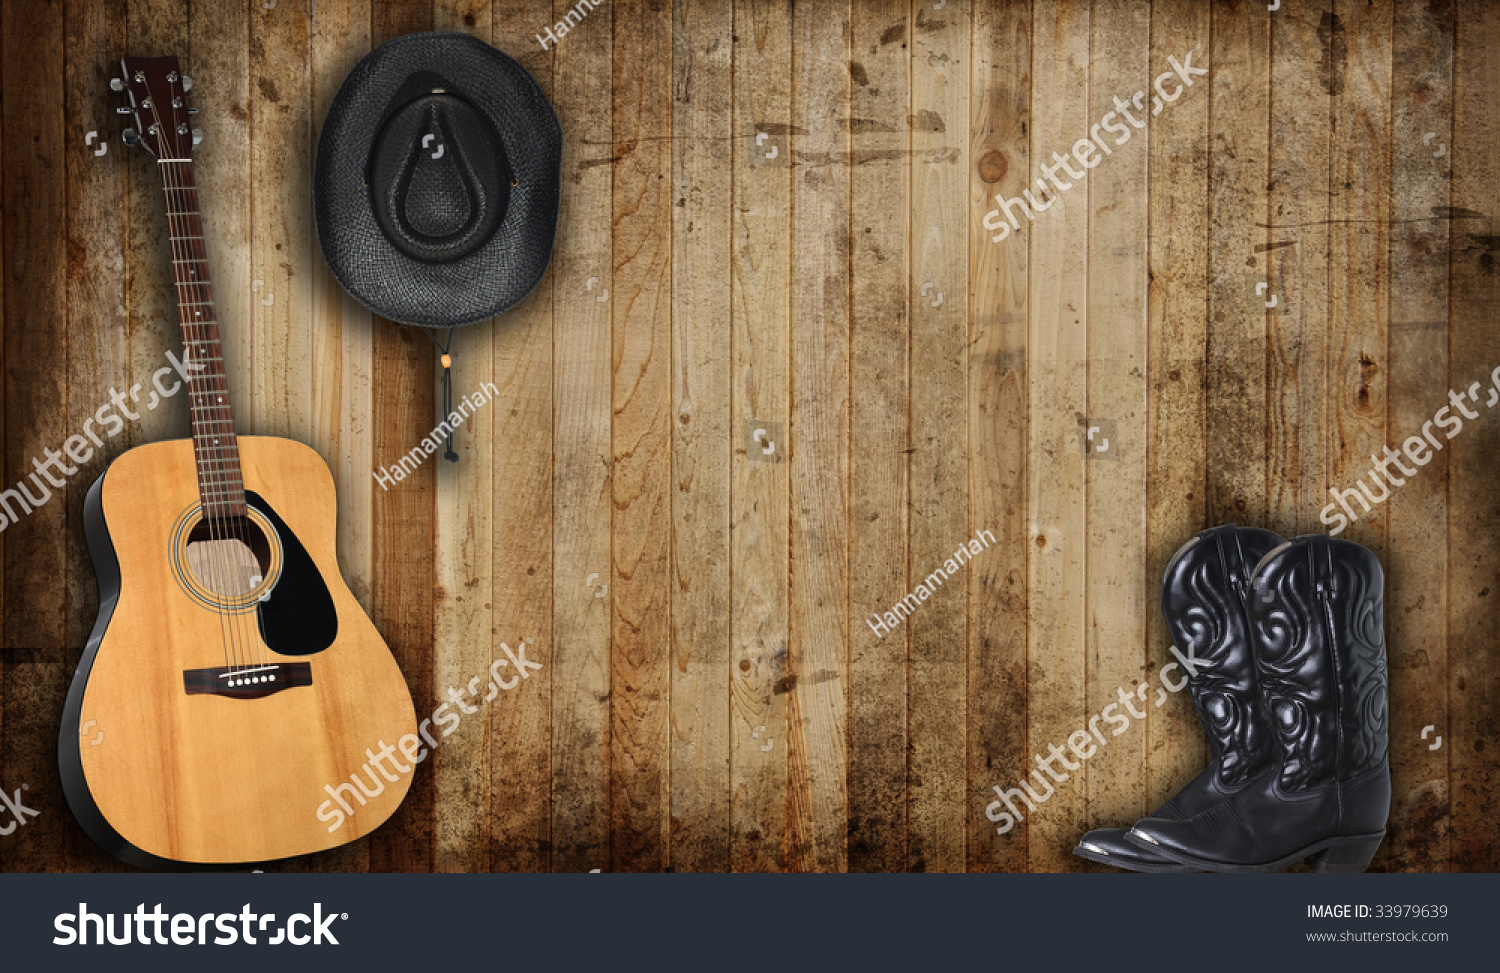 Boots cowboy and hat and guitar photo video